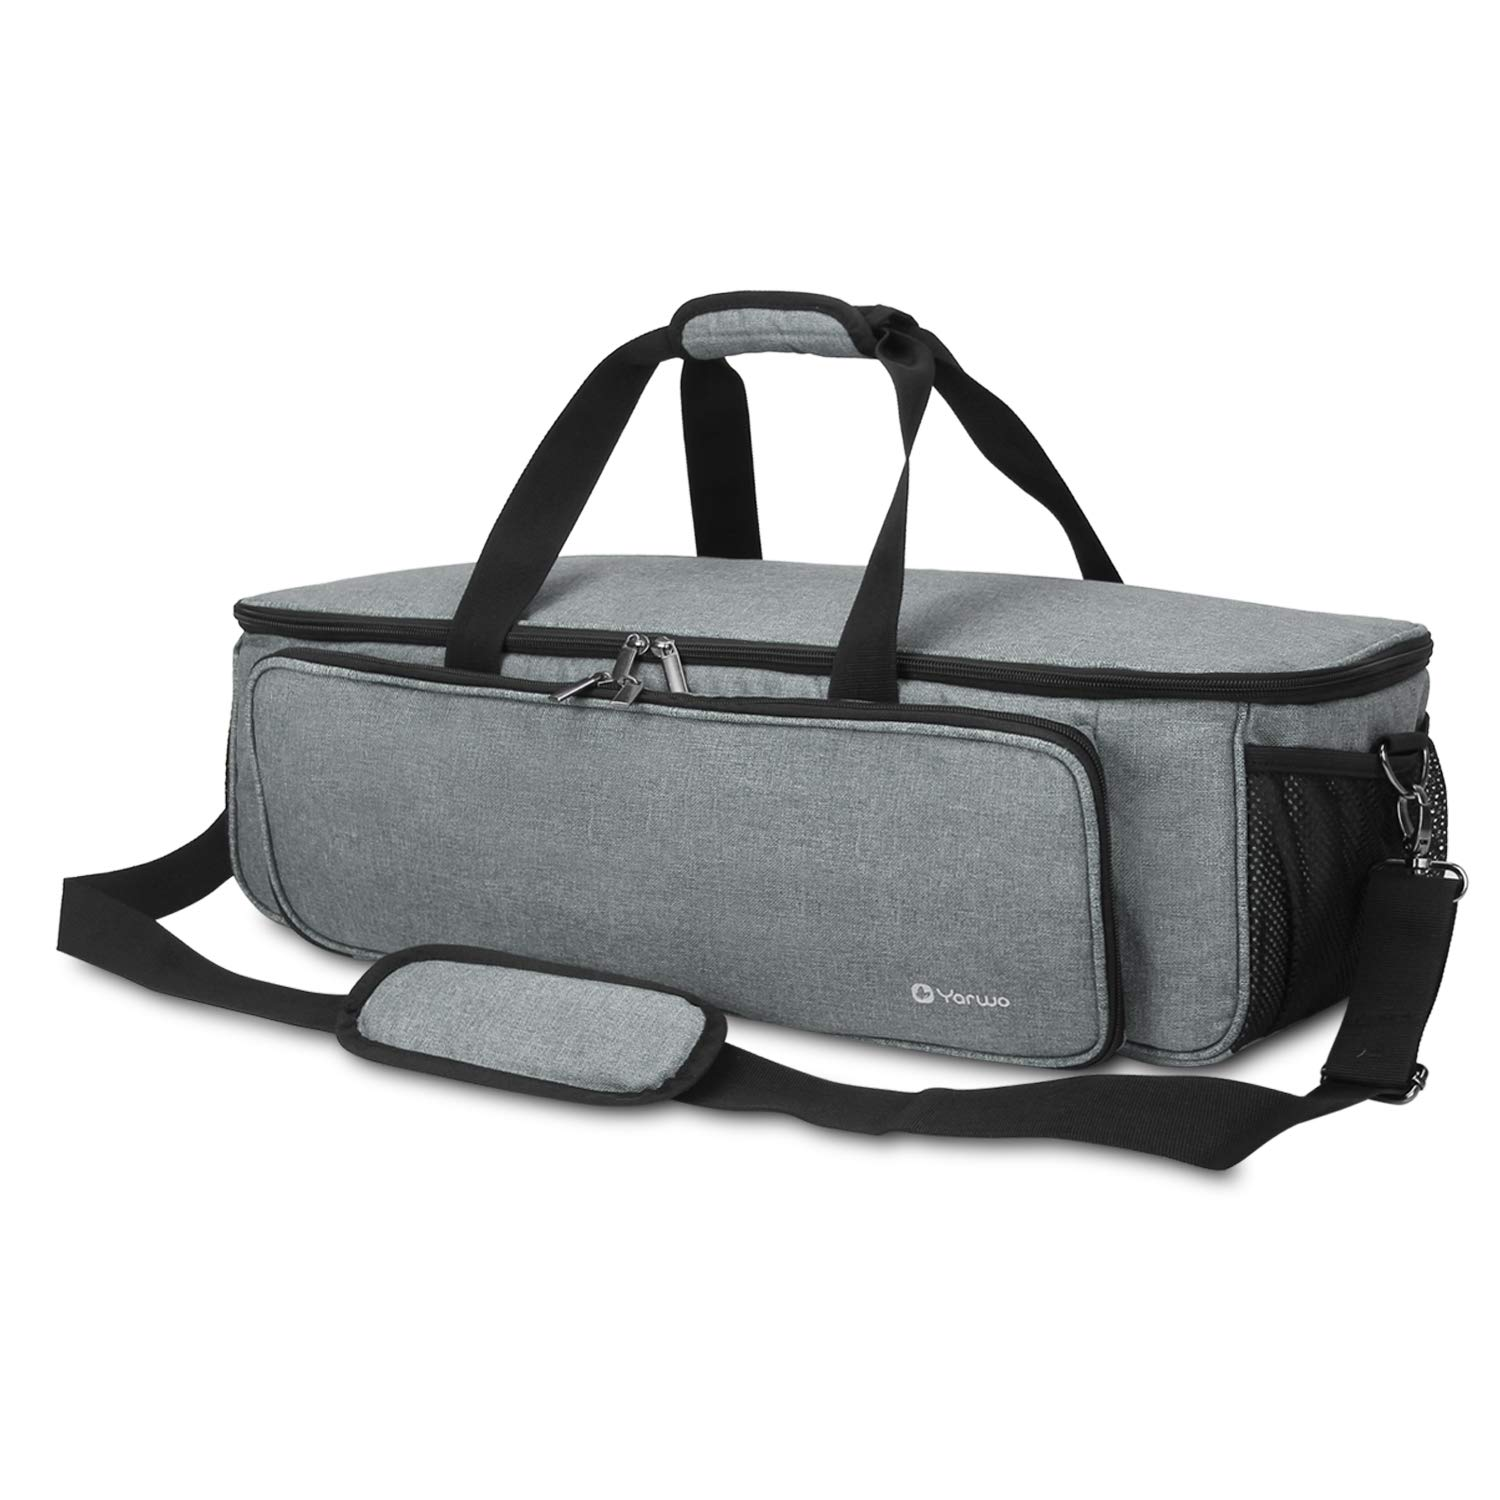 Cricut Maker Silhouette Cameo 3 Bag Only Tote Bag Heavy Duty Nylon Travel Bag Compatible with Cricut Accessories Supplies Air 2 Grey Yarwo Carrying Bag for Cricut Explore Air